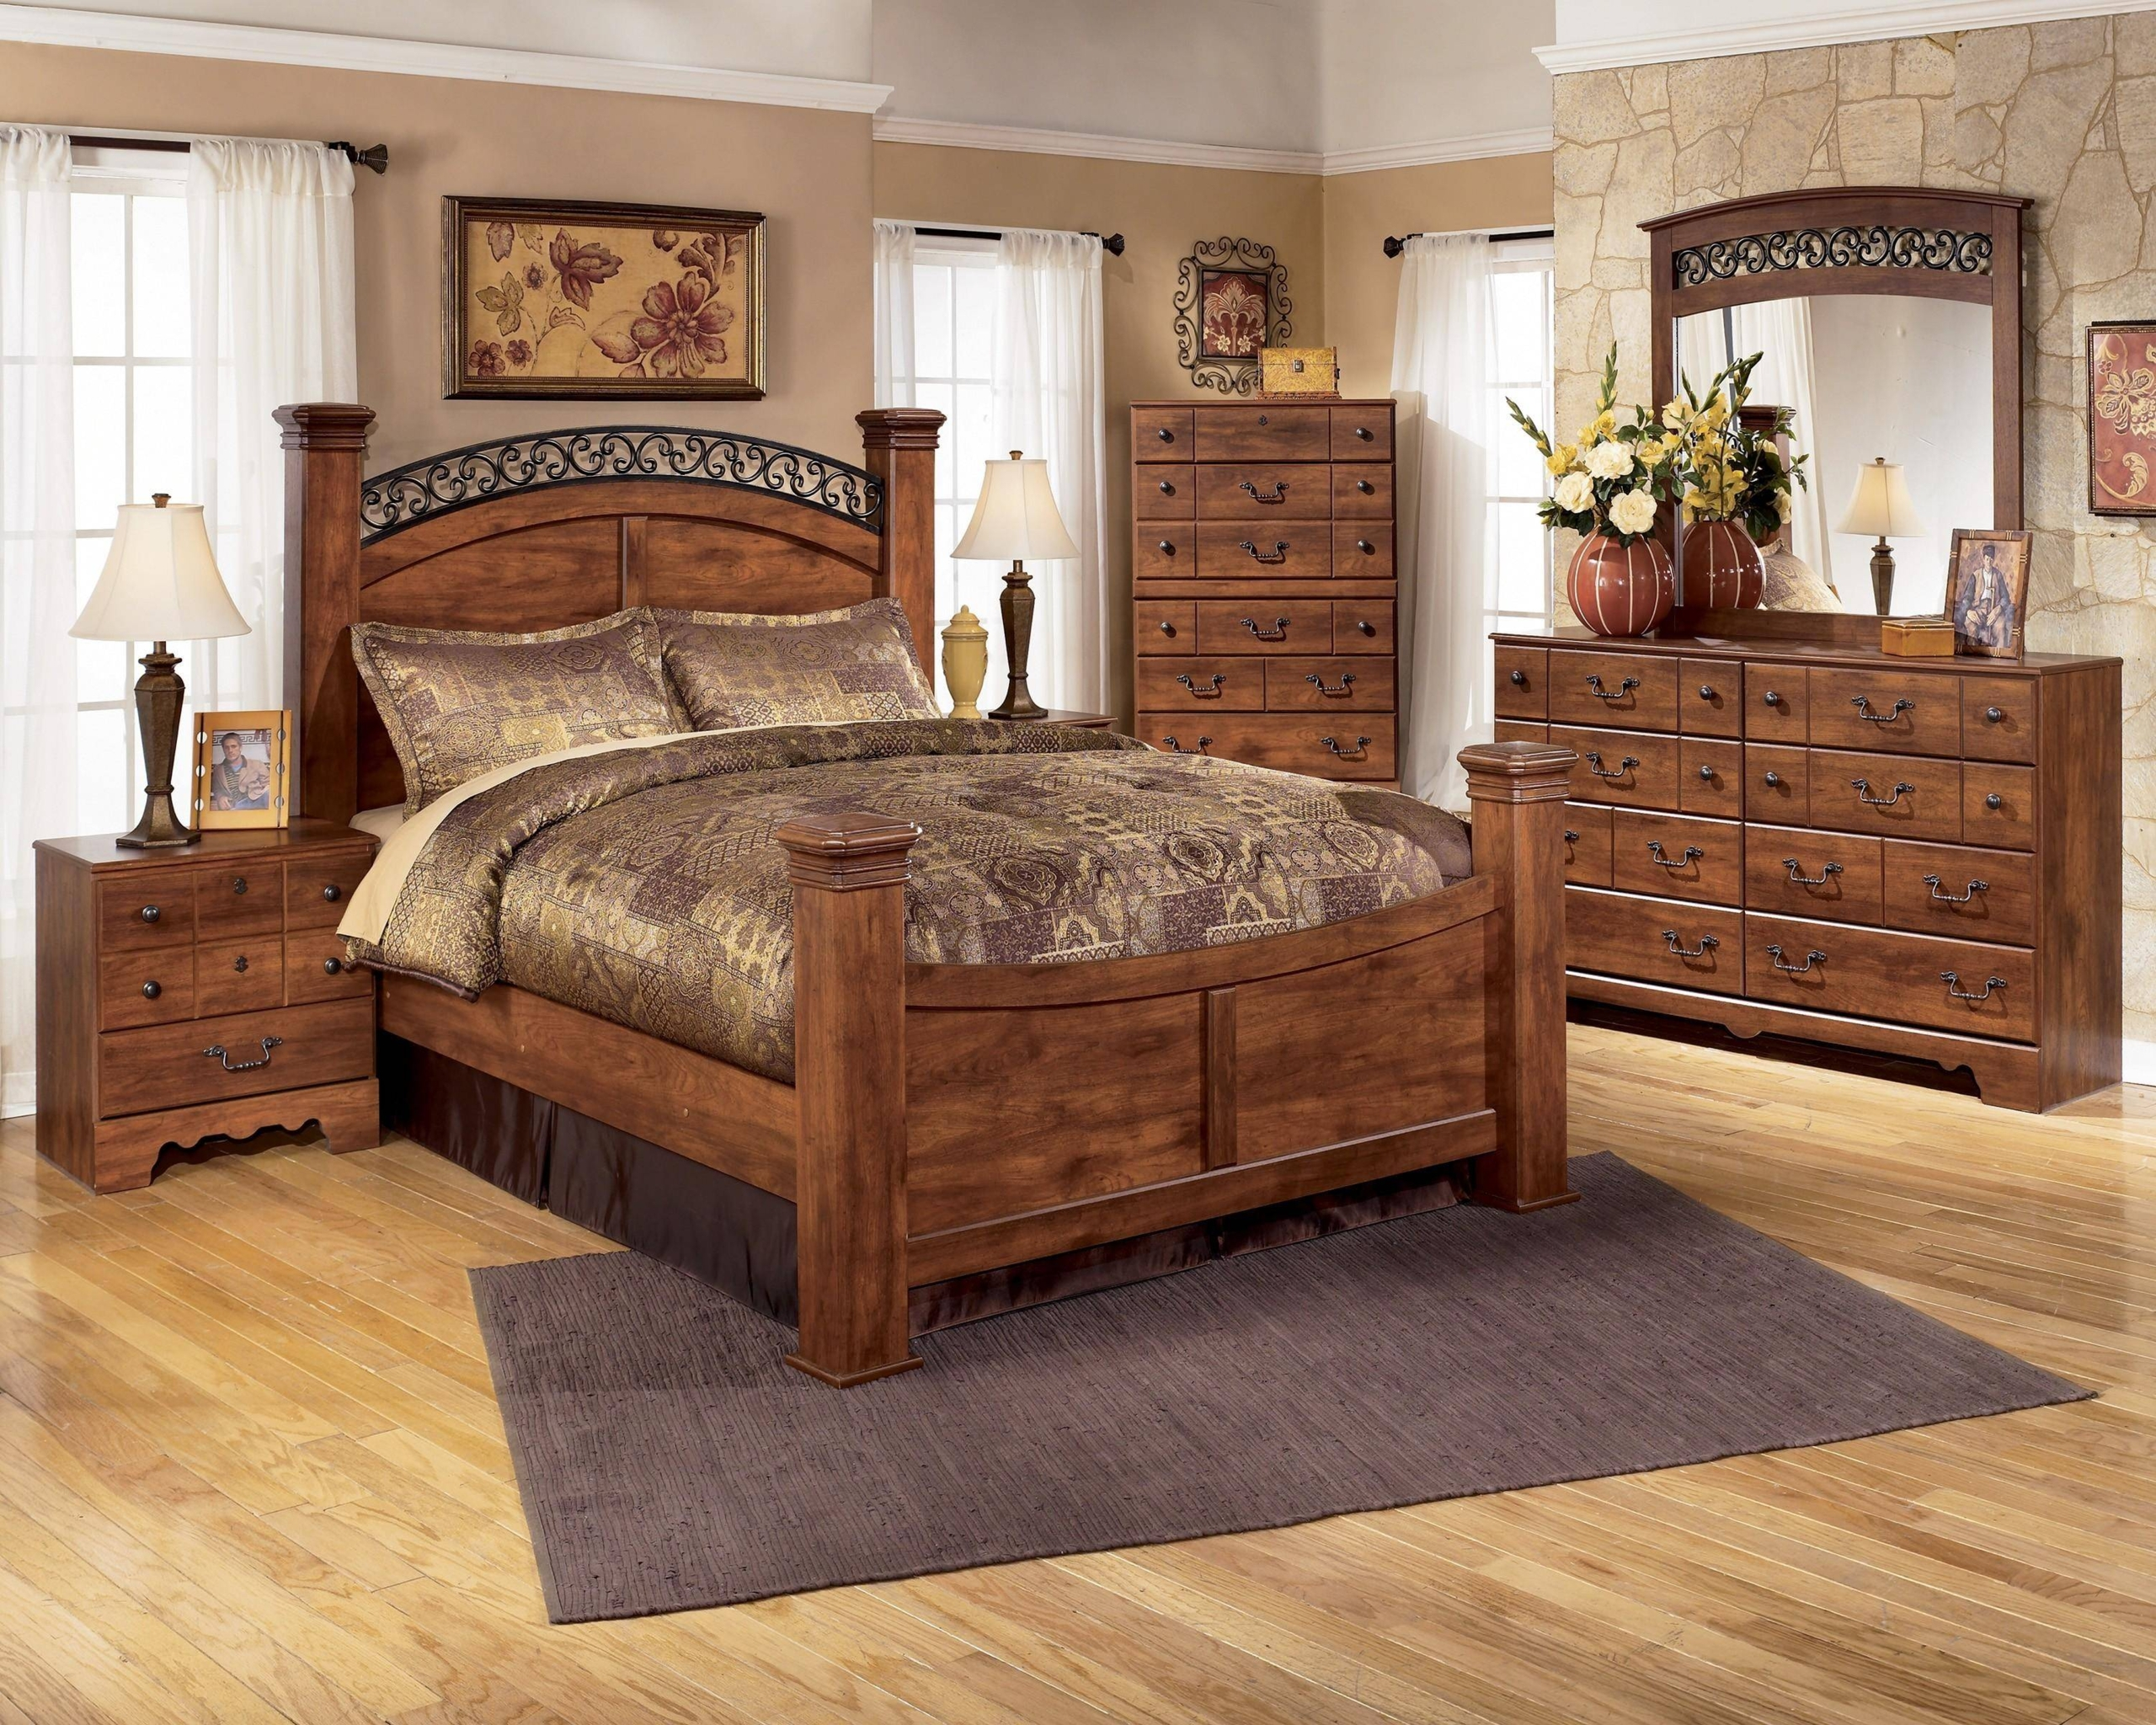 metal and wood bedroom sets ideas on